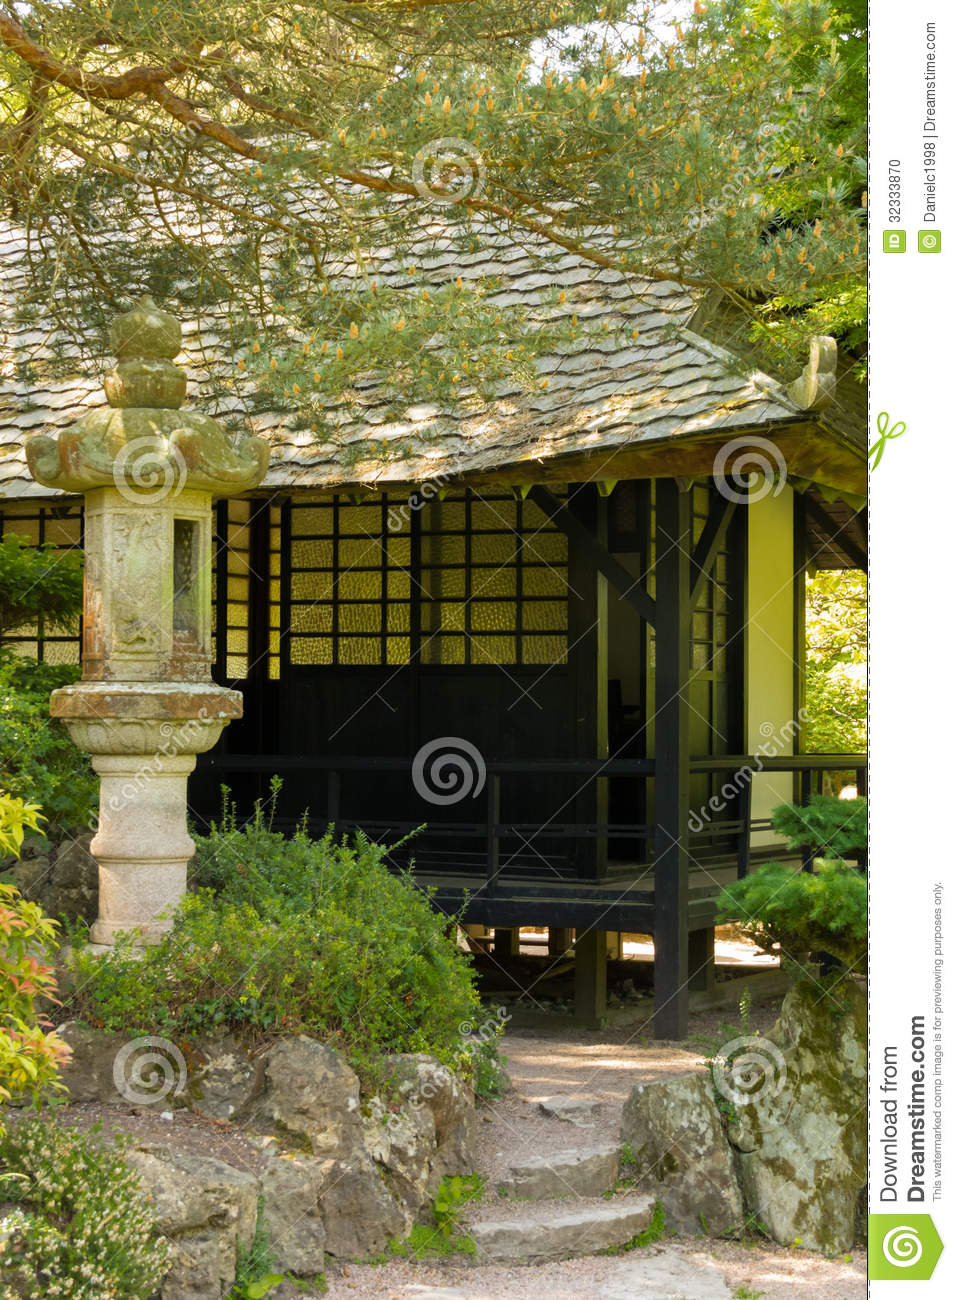 Tea house irish national stud 39 s japanese gardens kildare - Free garden plans ireland ...